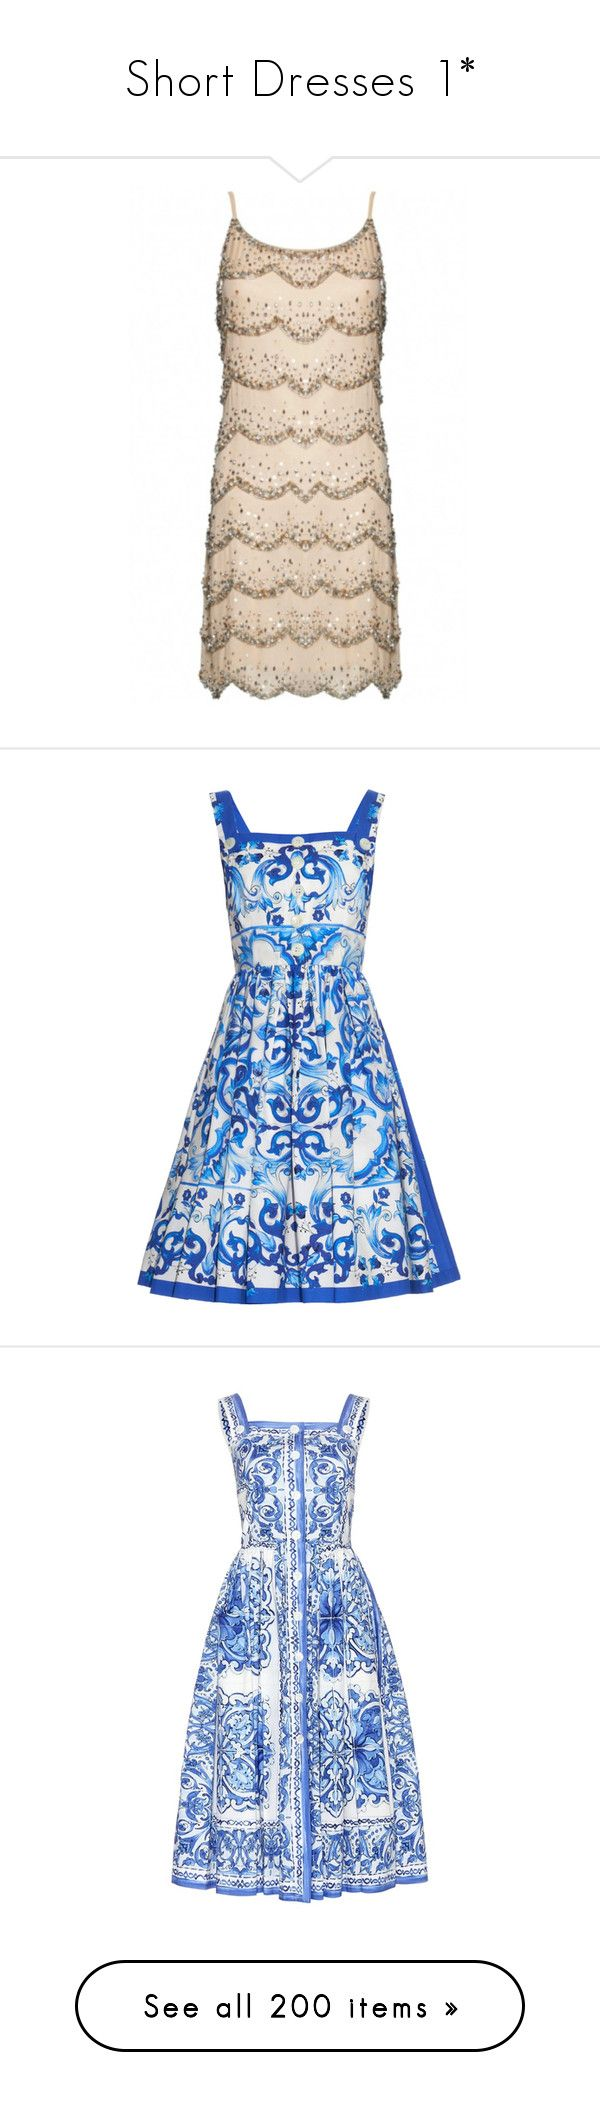 """""""Short Dresses 1*"""" by thesassystewart on Polyvore featuring dresses, short dresses, alice olivia dress, pink slip dress, slip dress, short beaded dress, vestido, blue print, pattern dress and mixed print dress"""